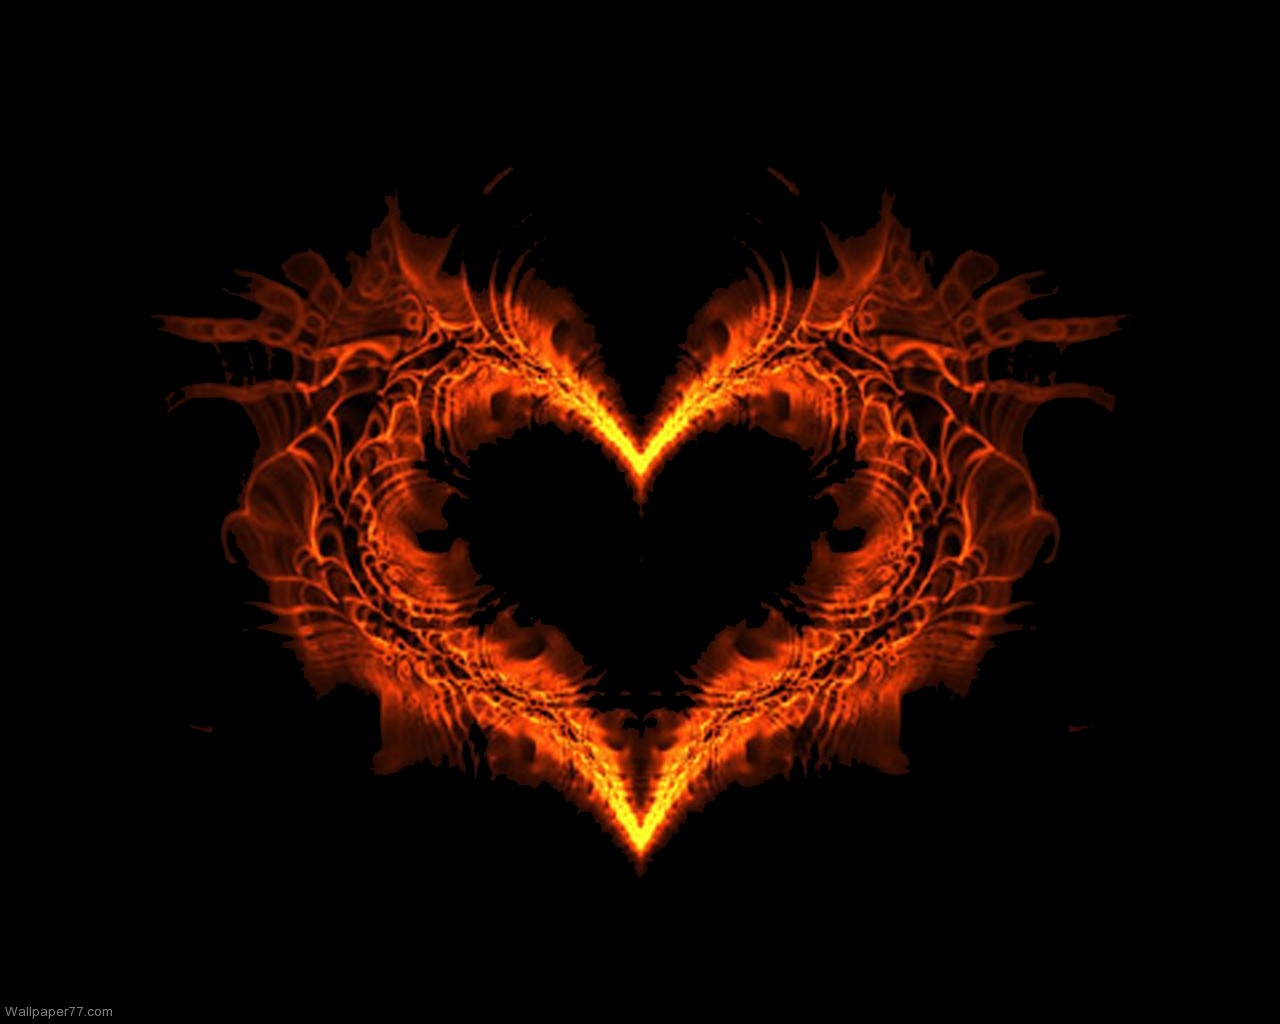 Burning Love Hd Wallpapers: Burning Heart Wallpapers - HD Desktop Wallpapers